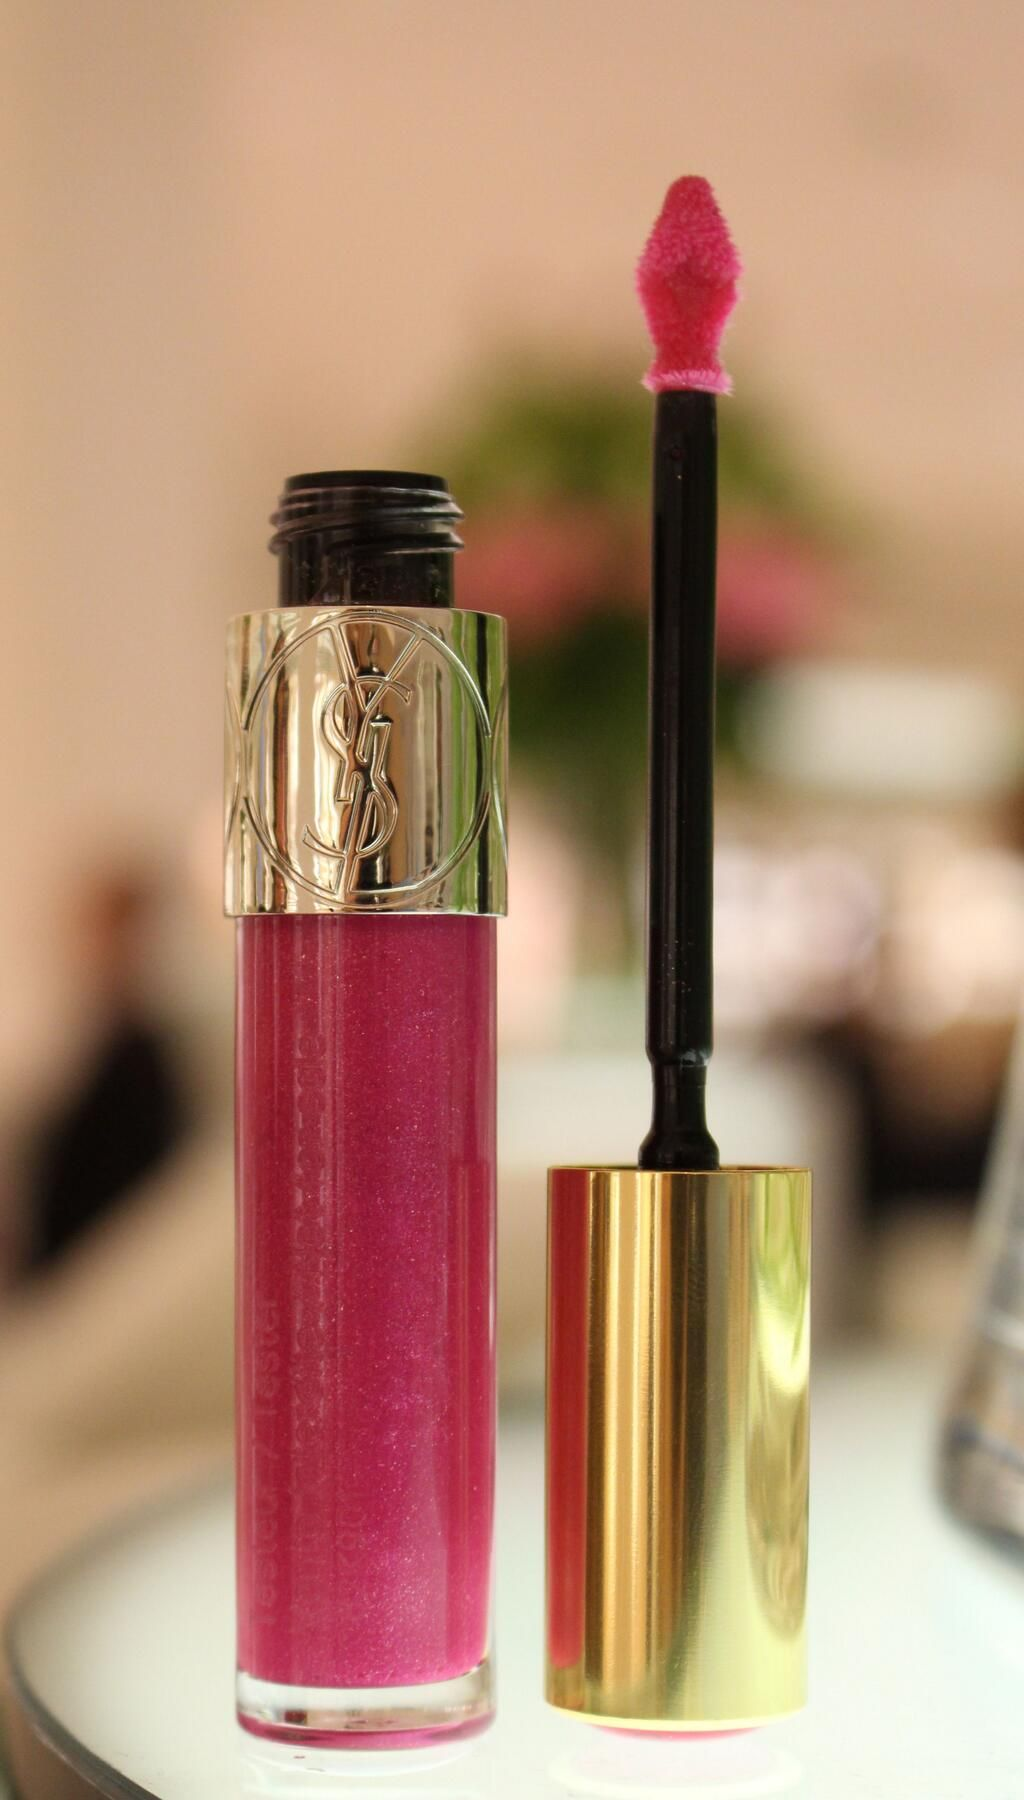 Create a look of ultrachic sophistication with YSL's